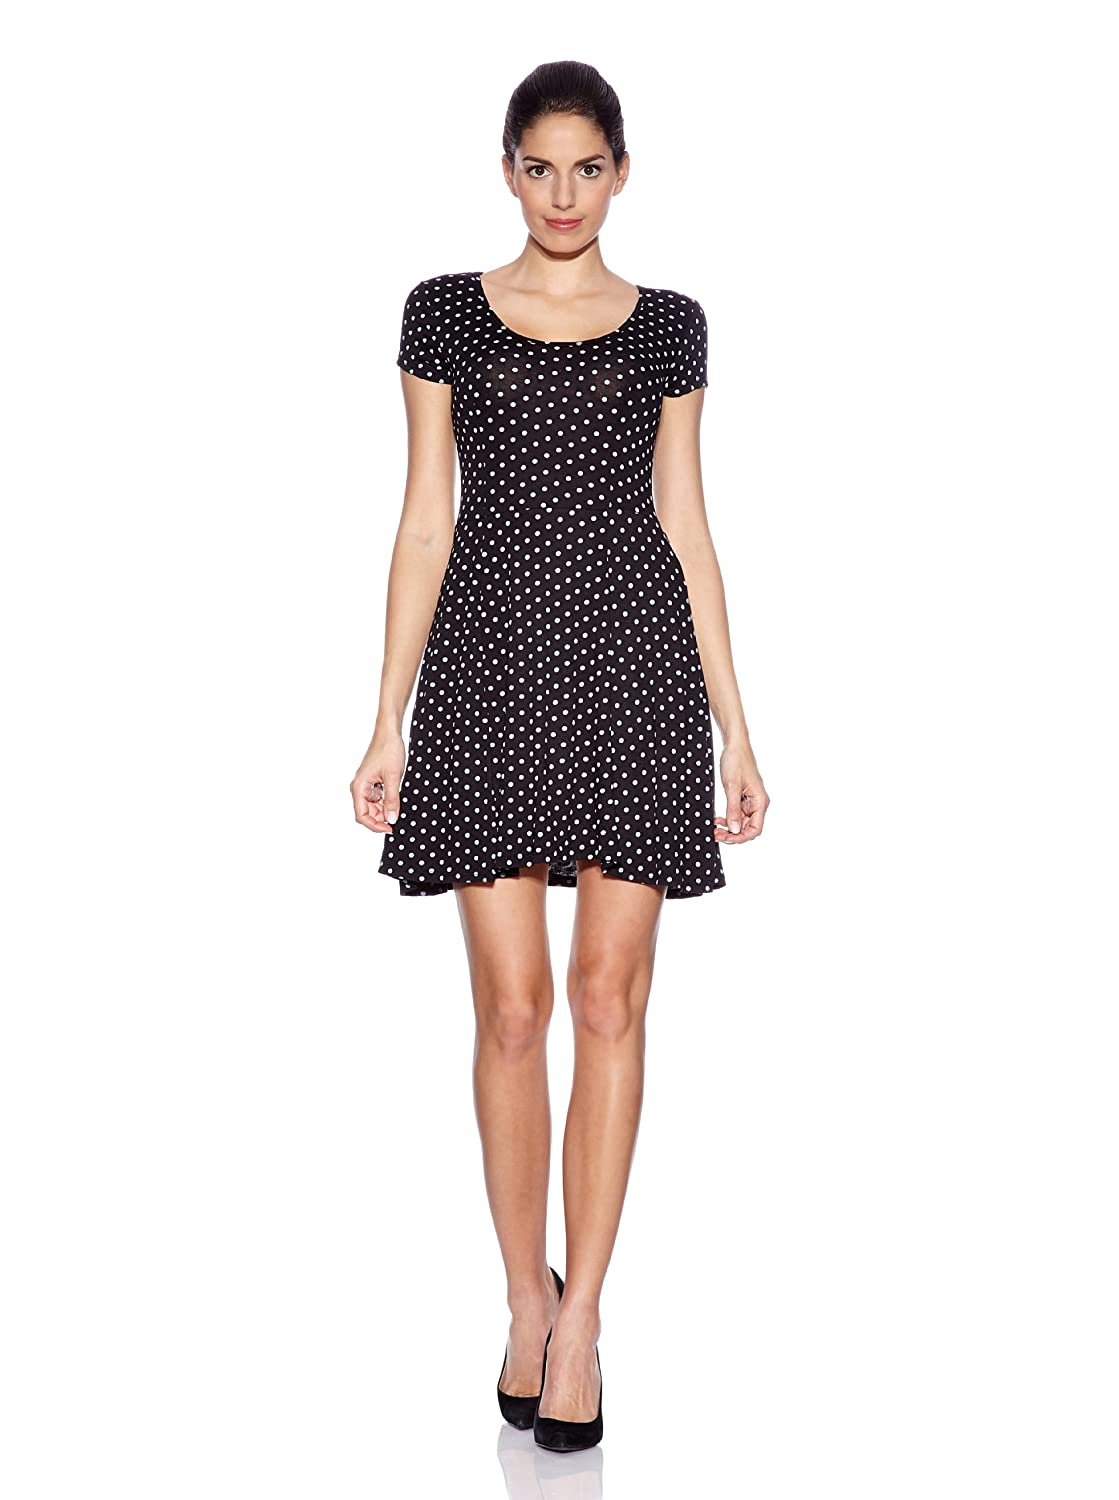 La Belle Parisienne Women's Polka Dot Dress Black black Small